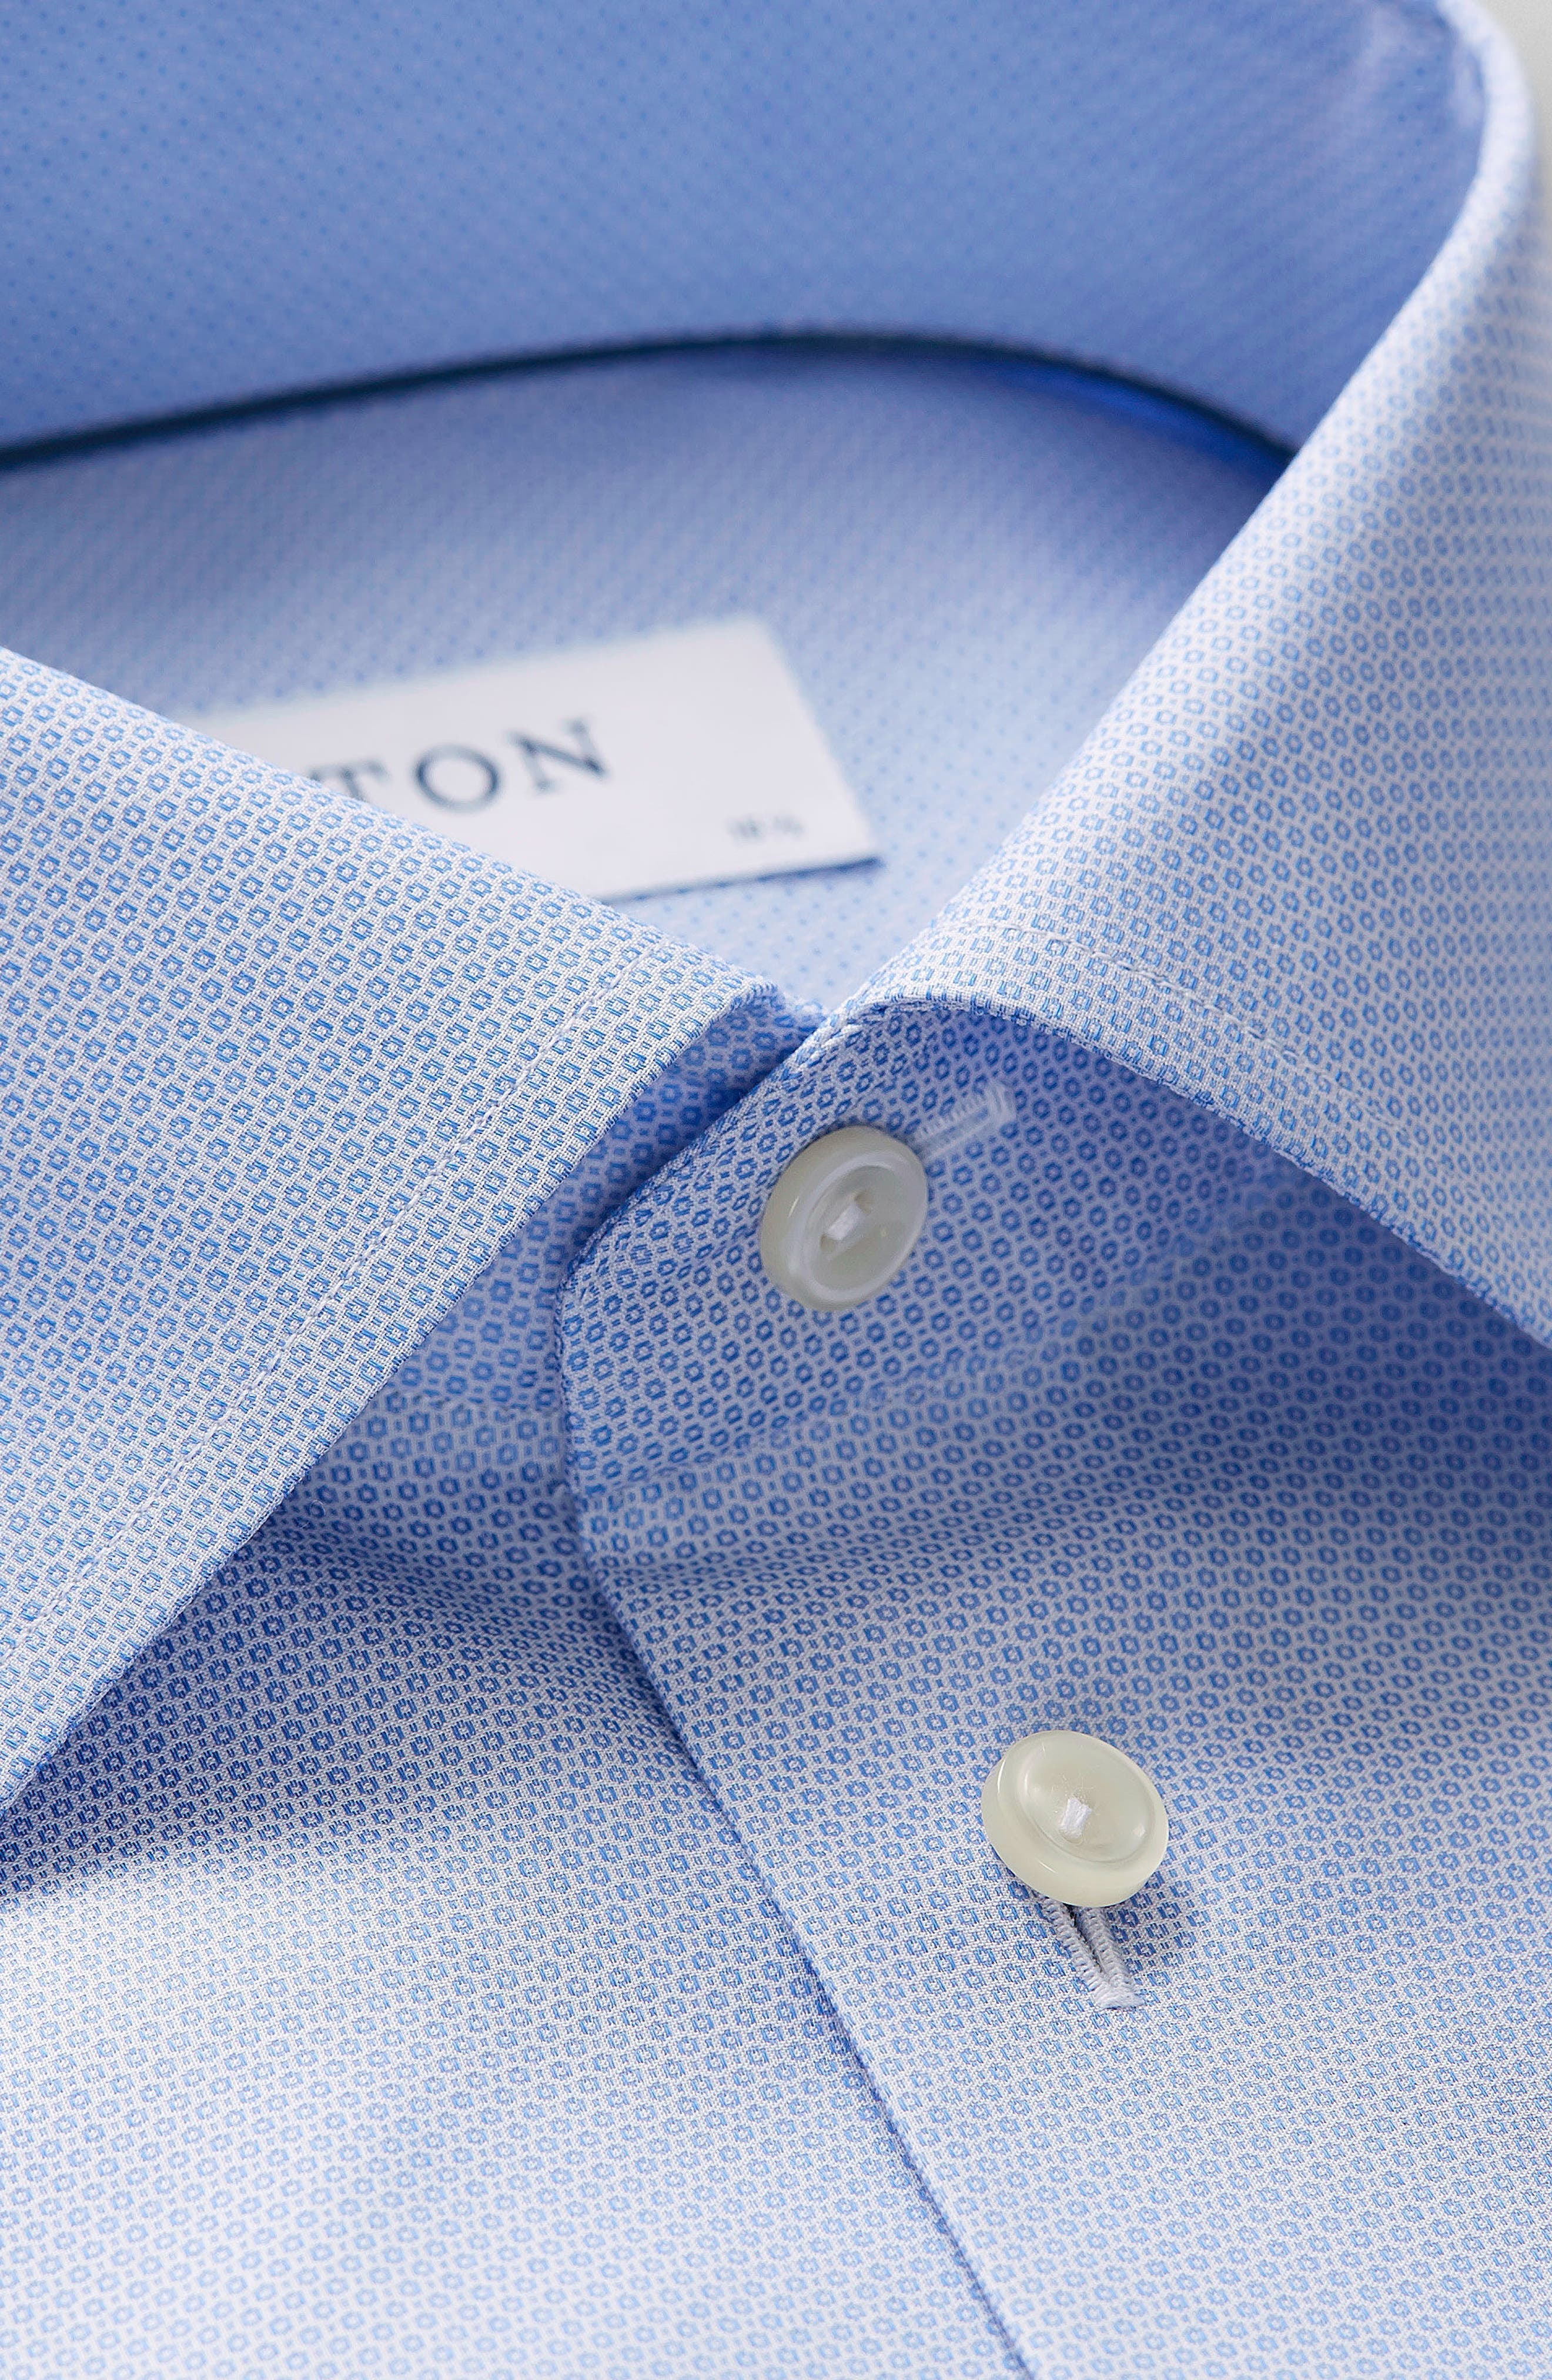 Alternate Image 2  - Eton Contemporary Fit Textured Solid Dress Shirt